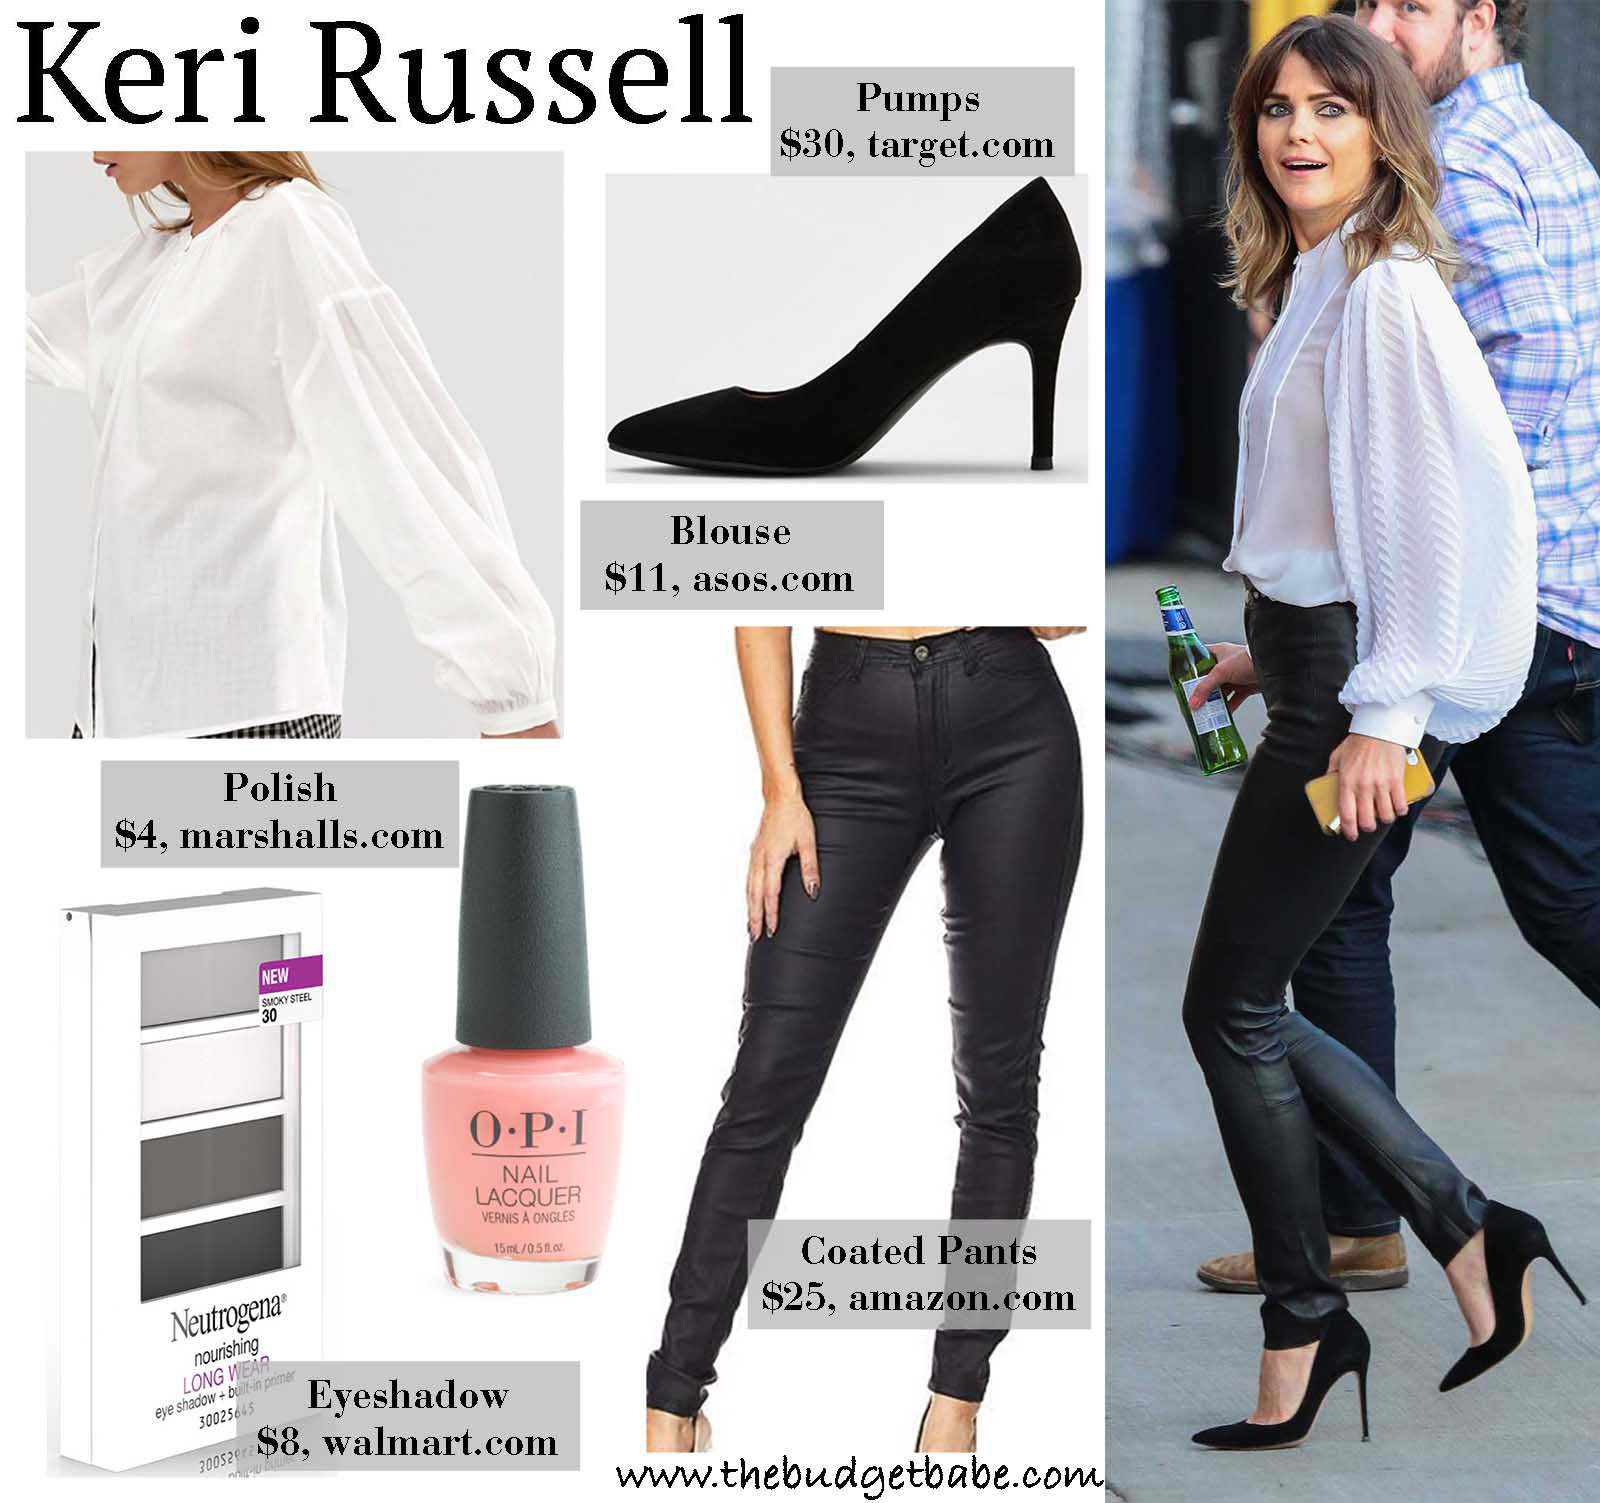 Kerri Russel's Balloon Sleeve Blouse and Leather Pants Look for Less